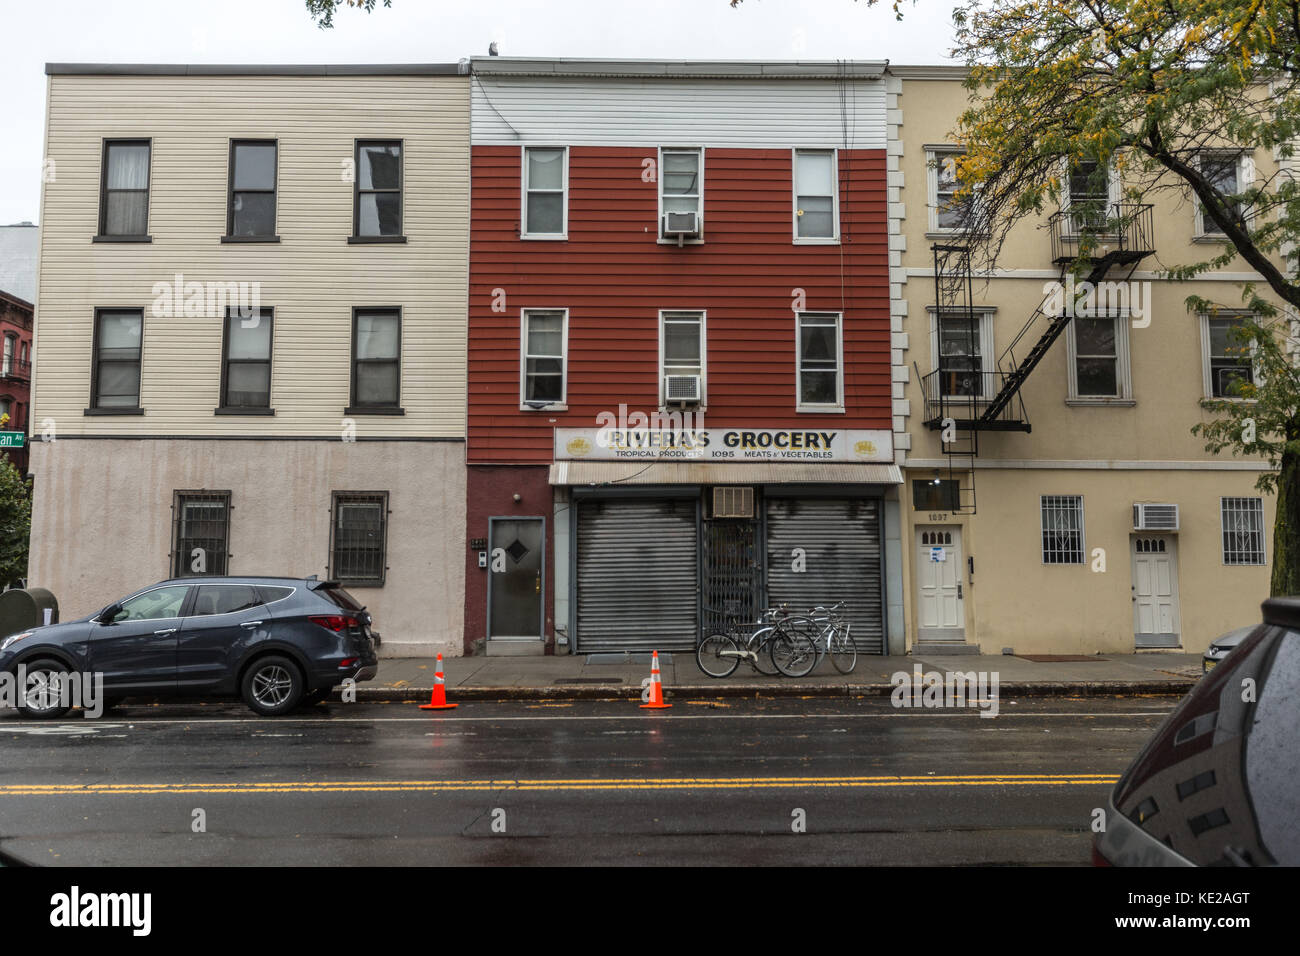 Buildings on Manhattan Avenue in Greenpoint, Brooklyn, NY. - Stock Image